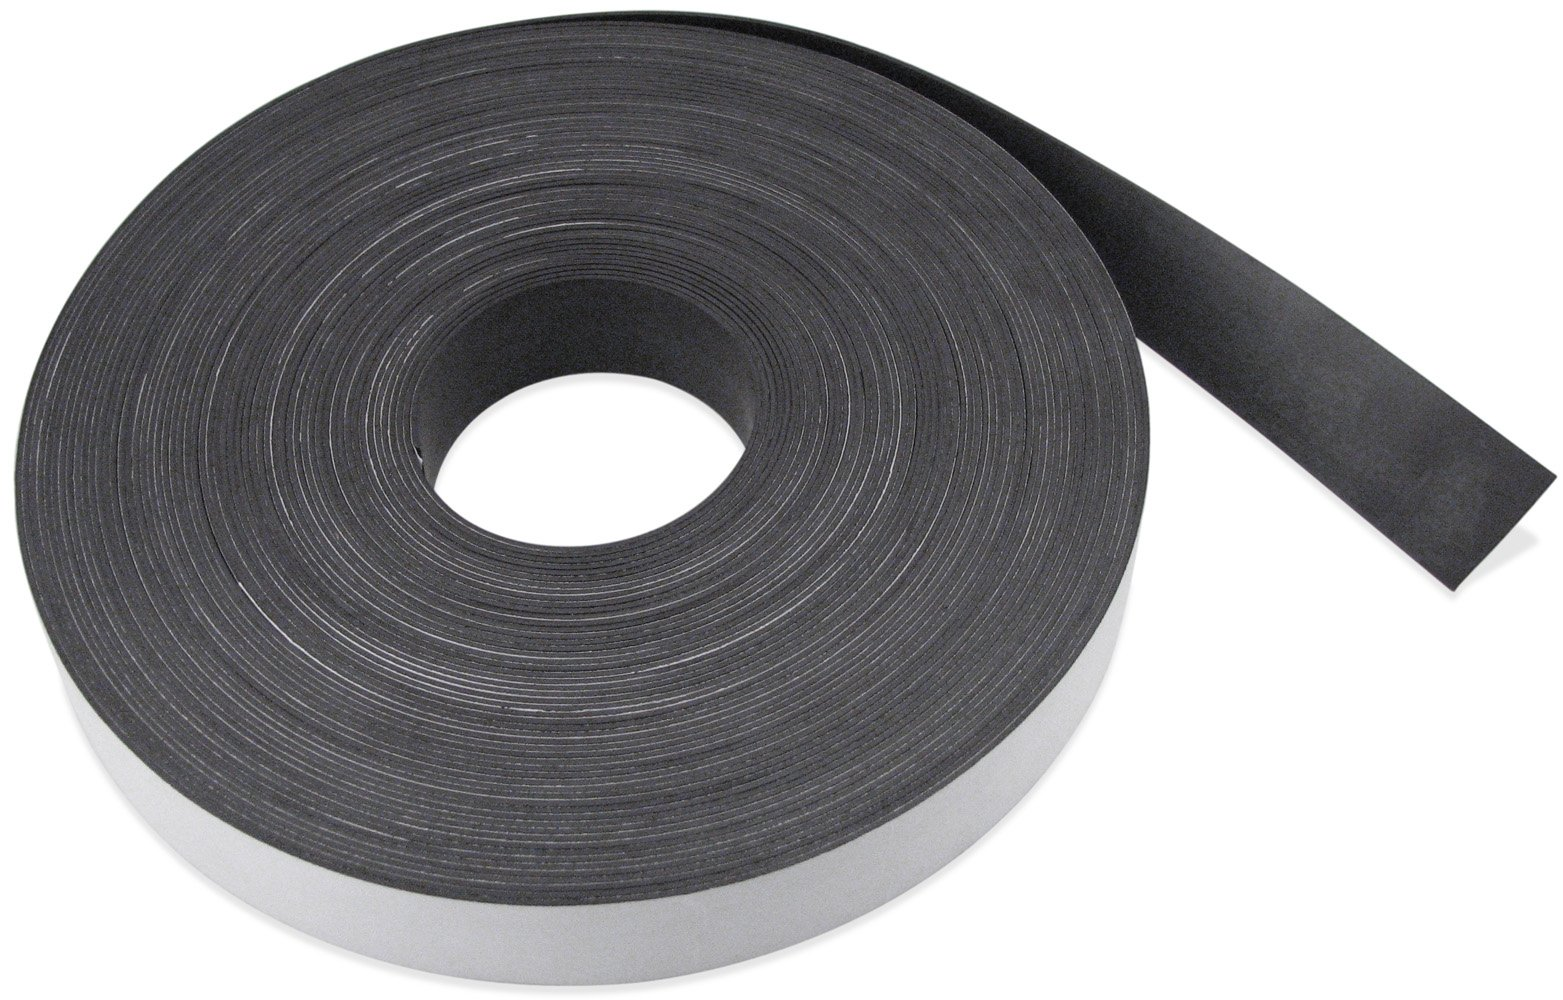 Flexible Magnet Strip with White Vinyl Coating, 1/32'' Thick, 4'' Height, 200 Feet, 1 Roll